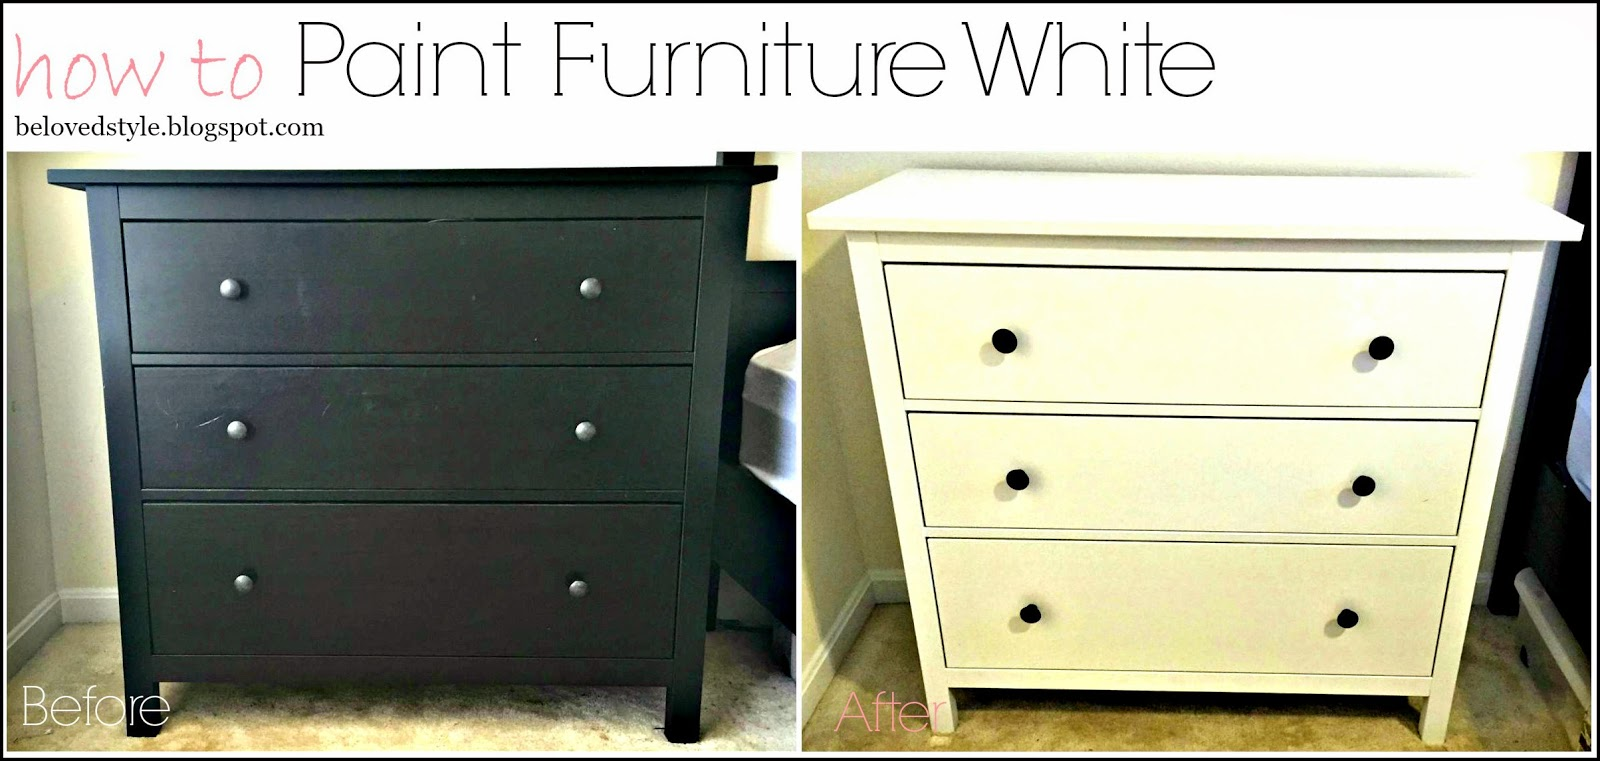 How to Paint Furniture White. Beloved Style  How to Paint Furniture White